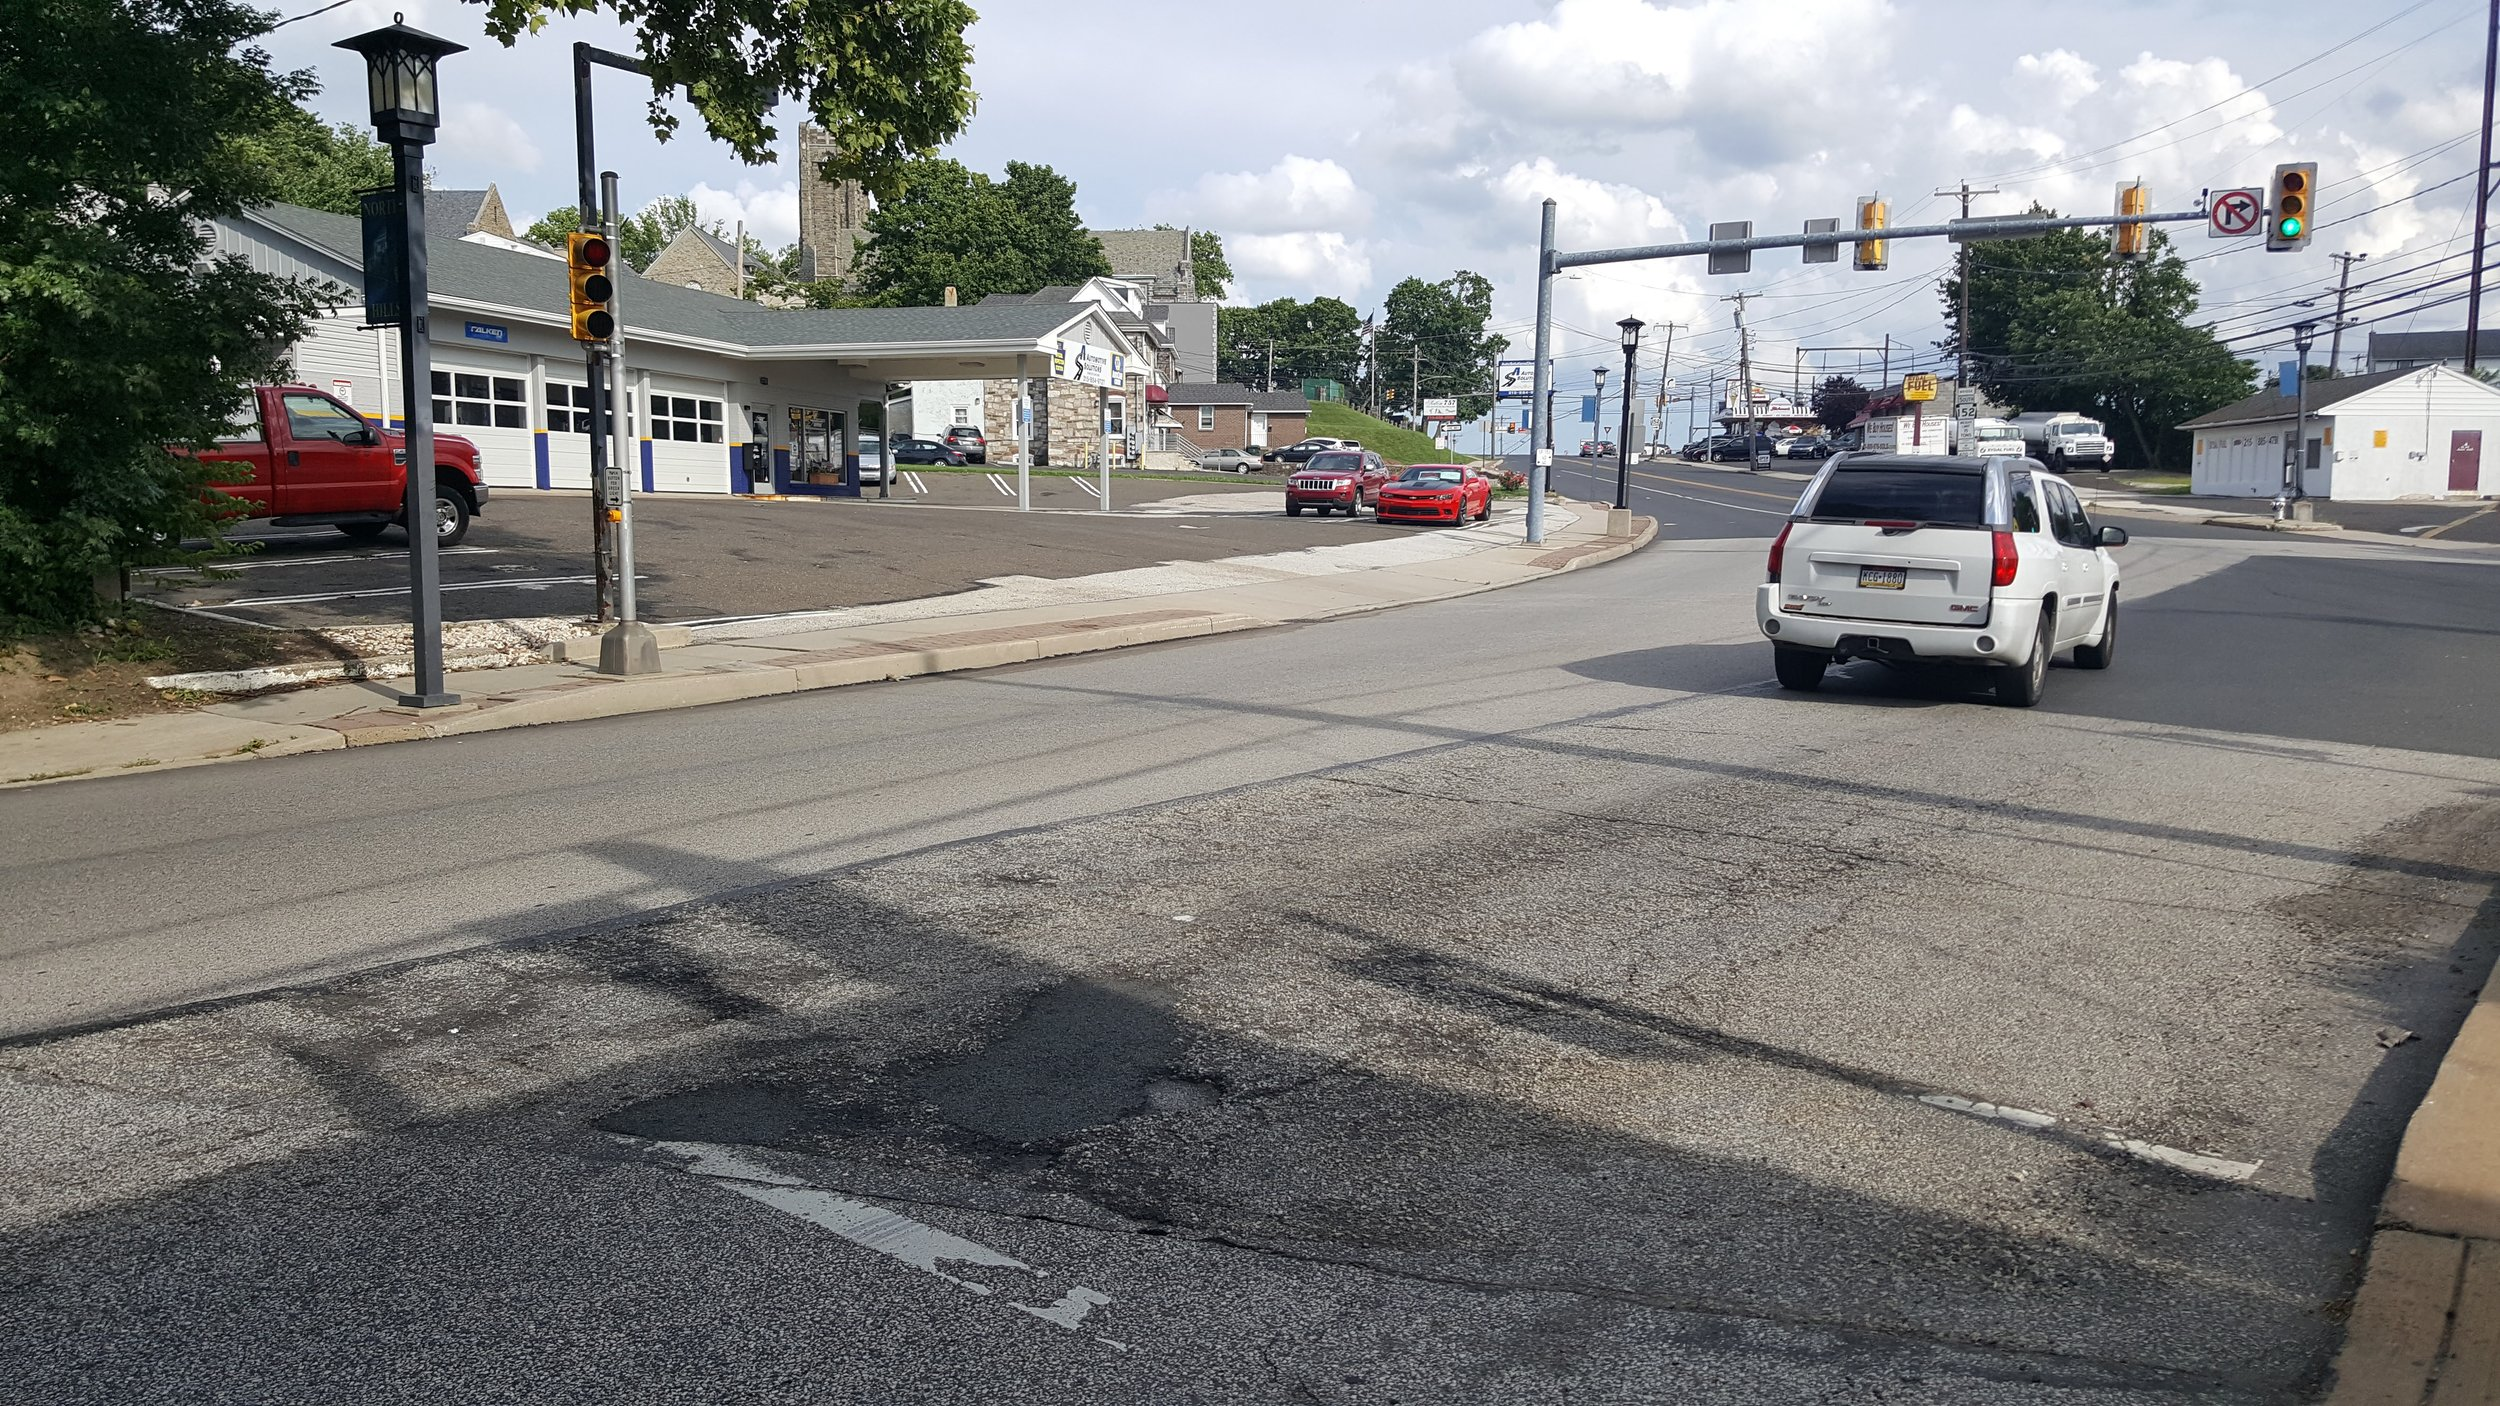 Intersection of Limekiln Pike and Mt Carmel Ave. Pedestrian signal, but no crosswalk.